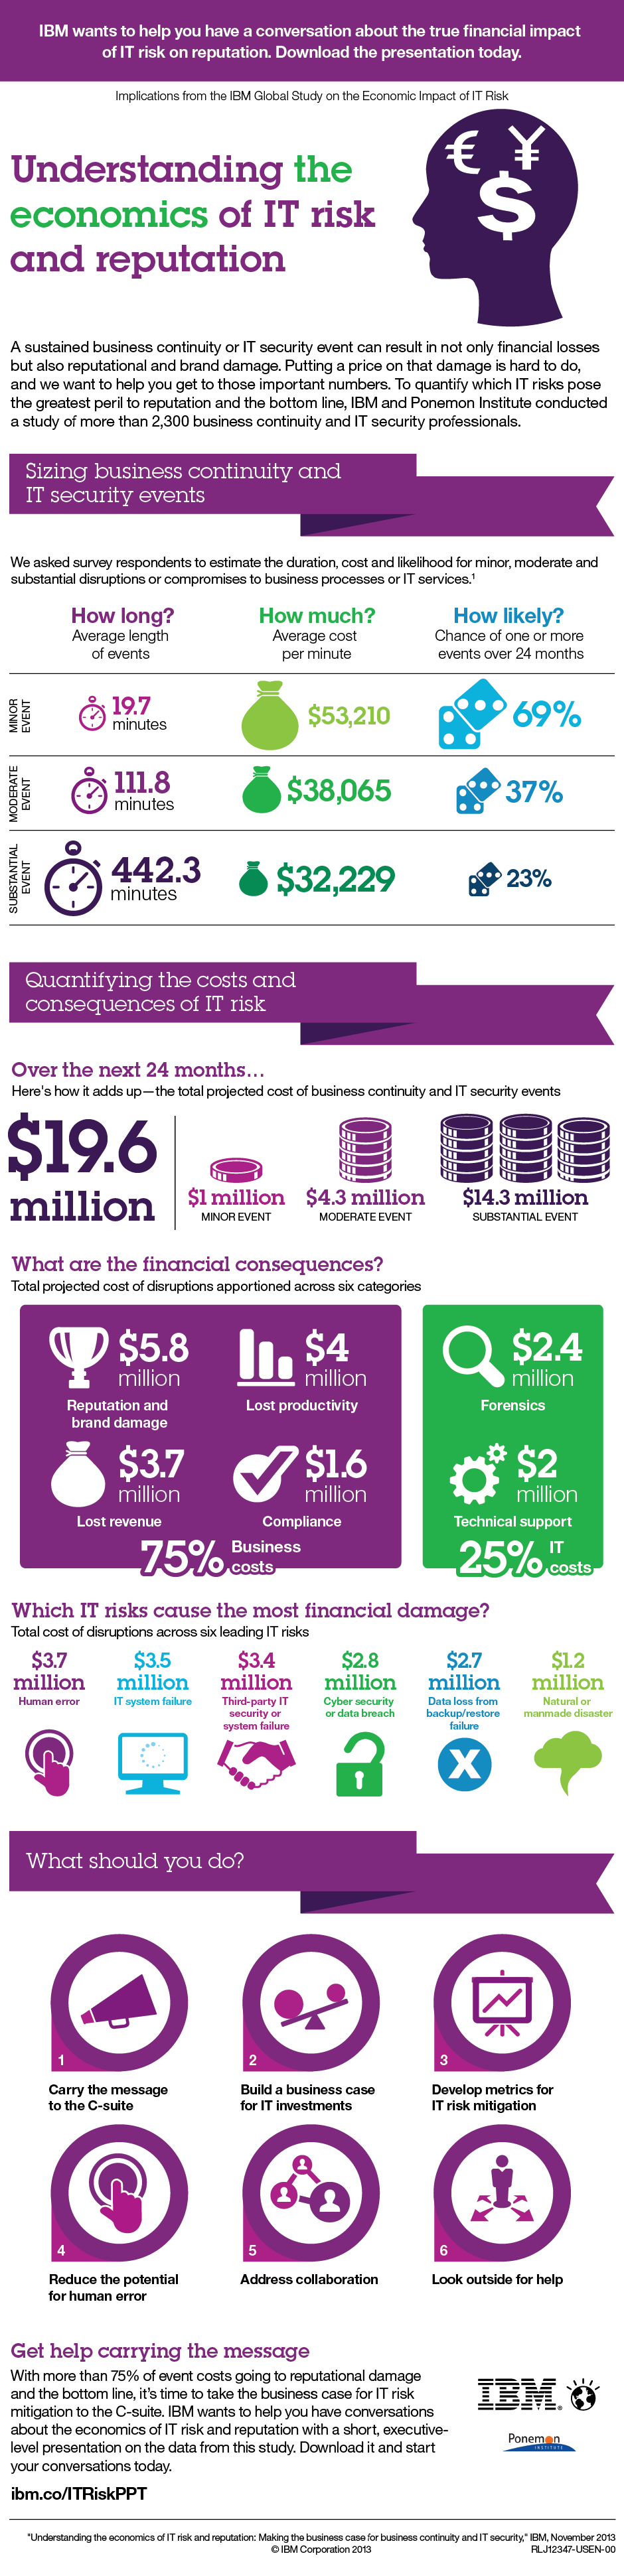 IBM infographic: Understanding the economics of IT risk and reputation